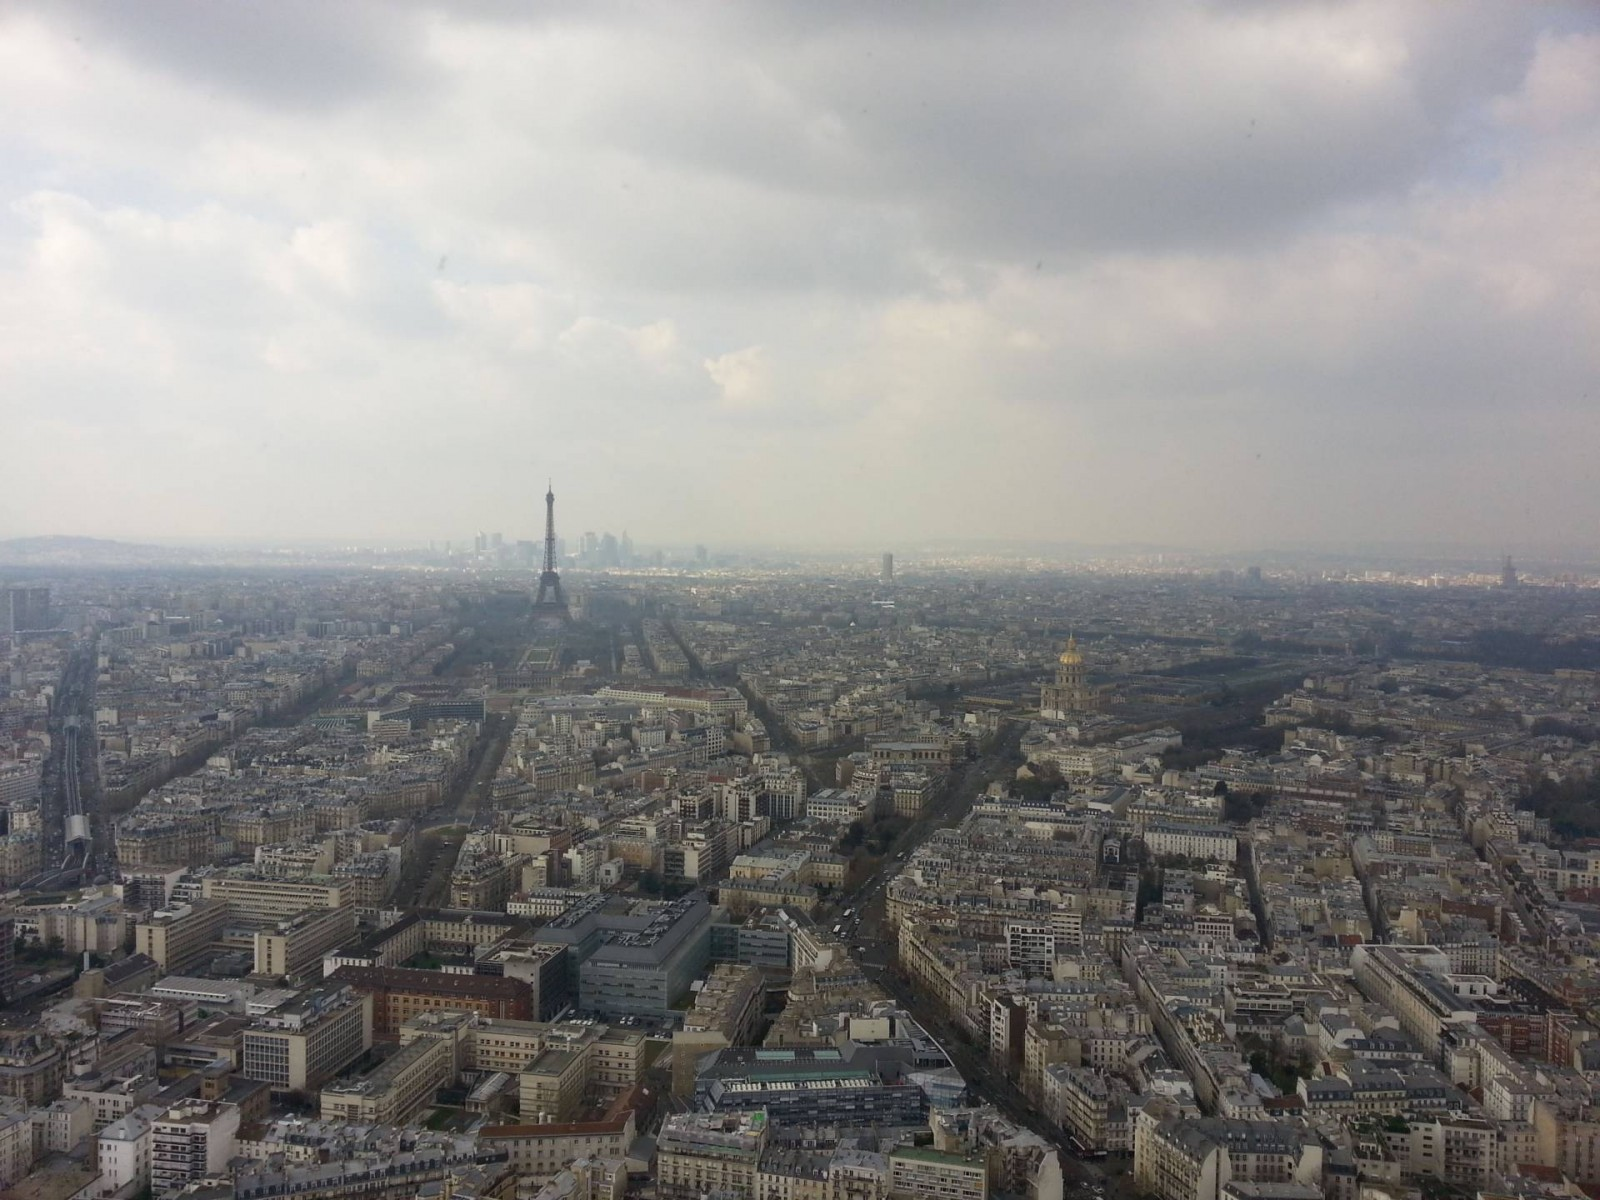 Paris skyline view from Montparnasse Tower